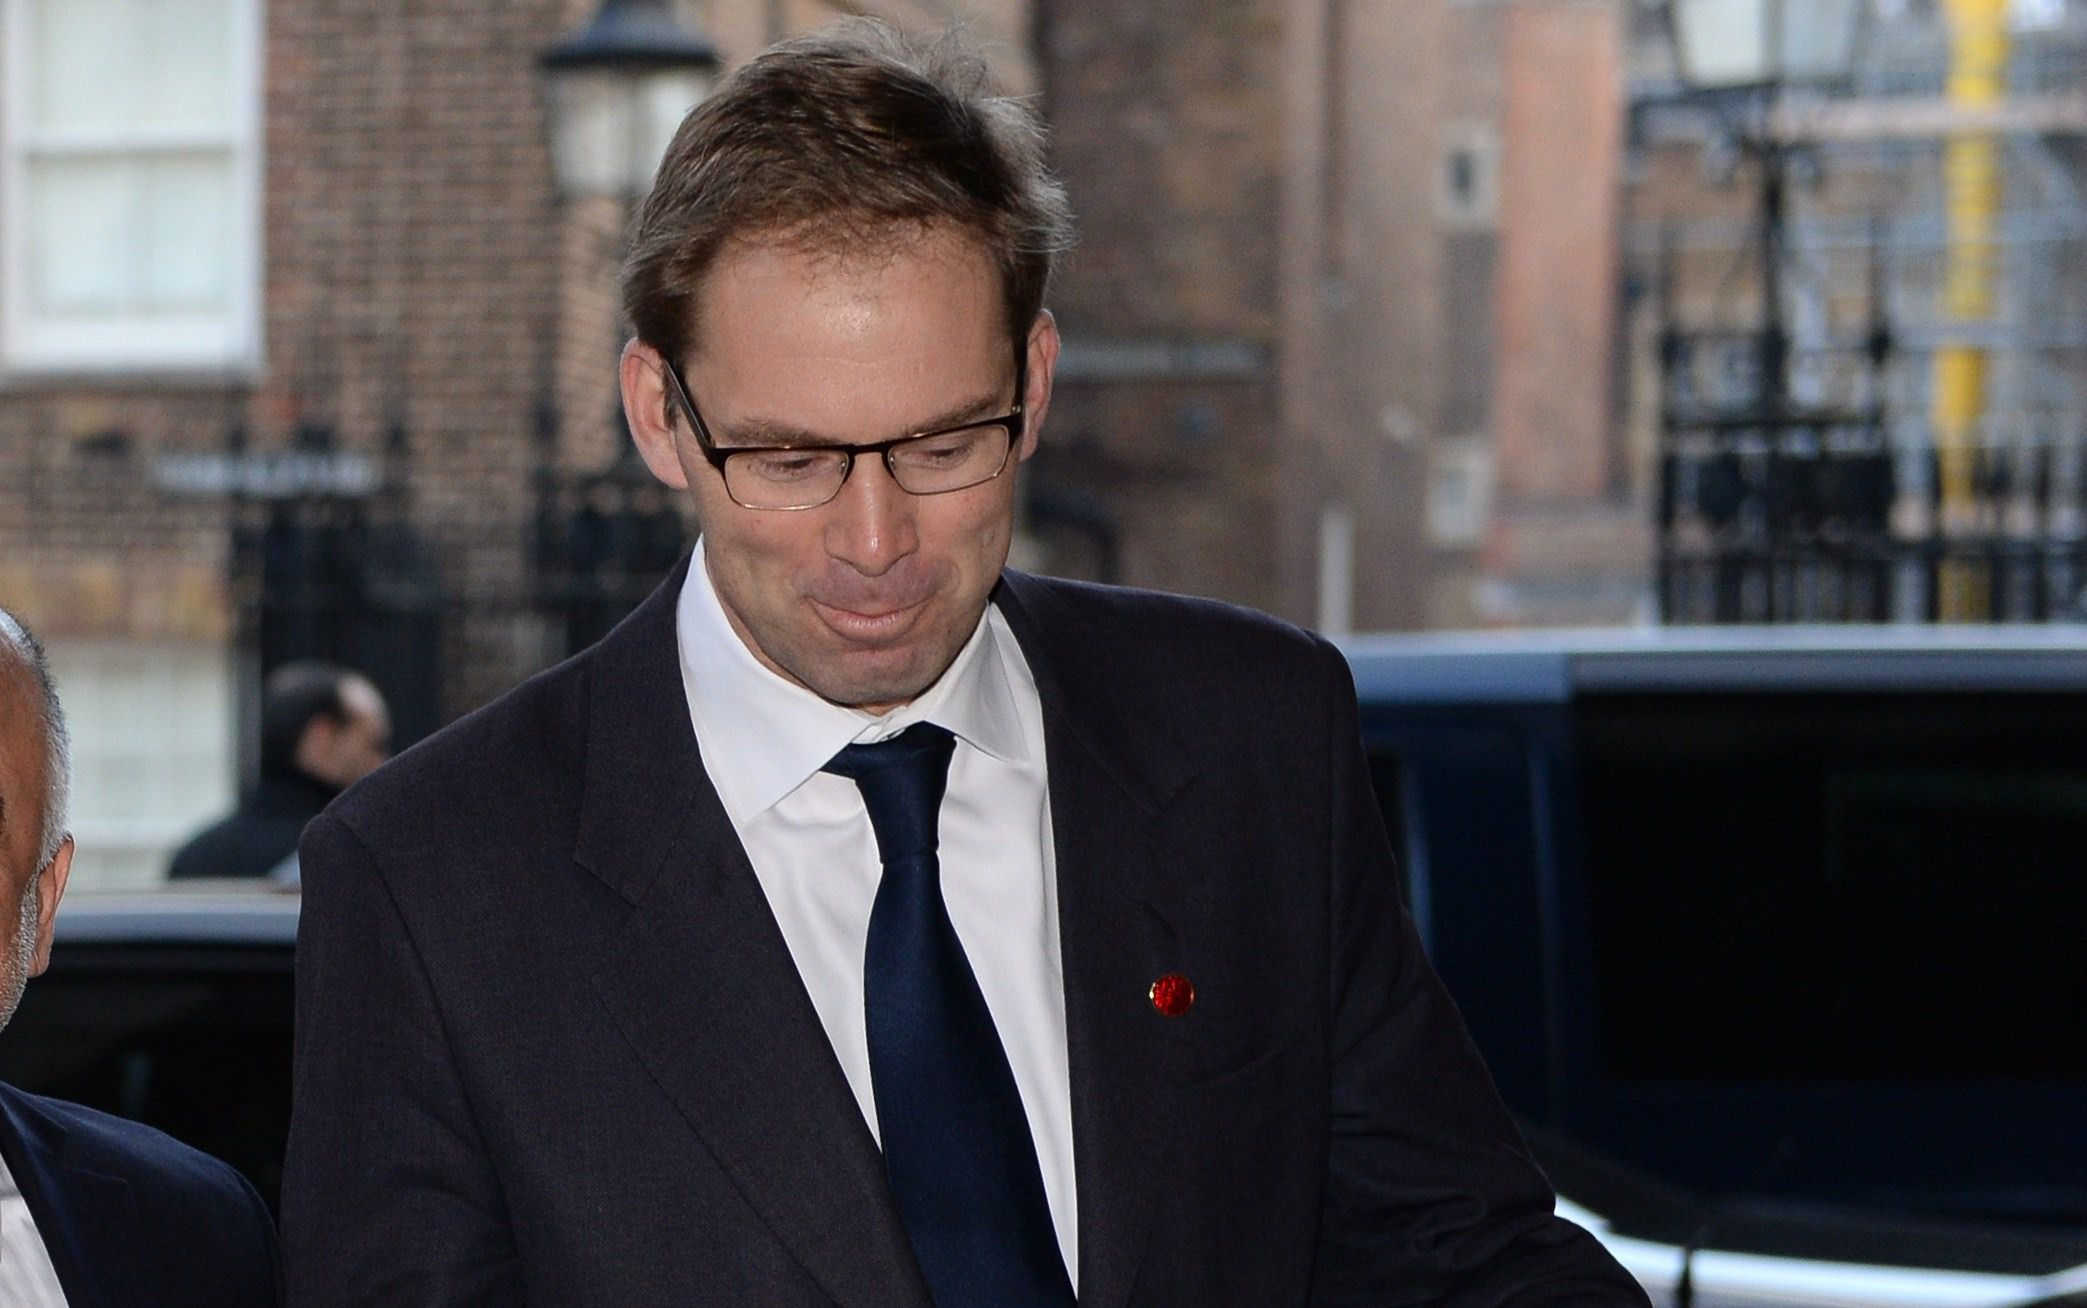 Foreign Office minister Tobias Ellwood